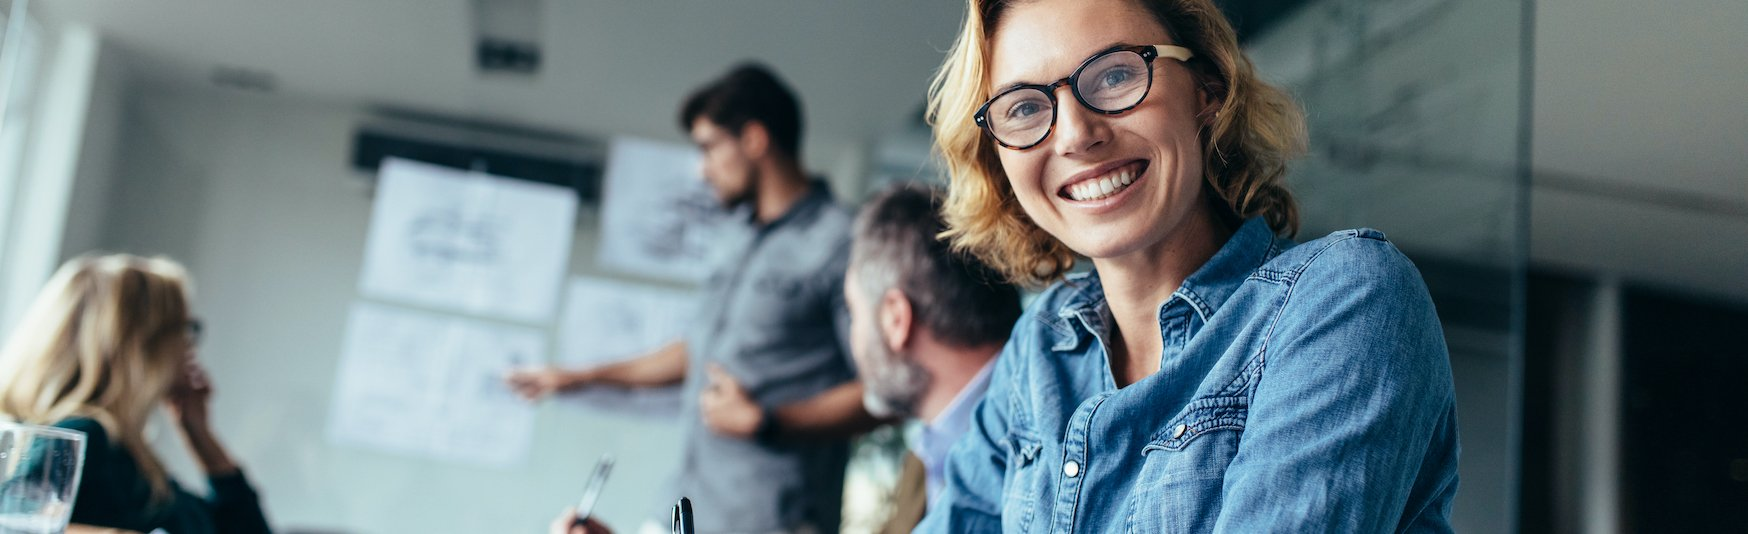 LP_Header-1748x534-smiling-white-woman-glasses-conference-room-office